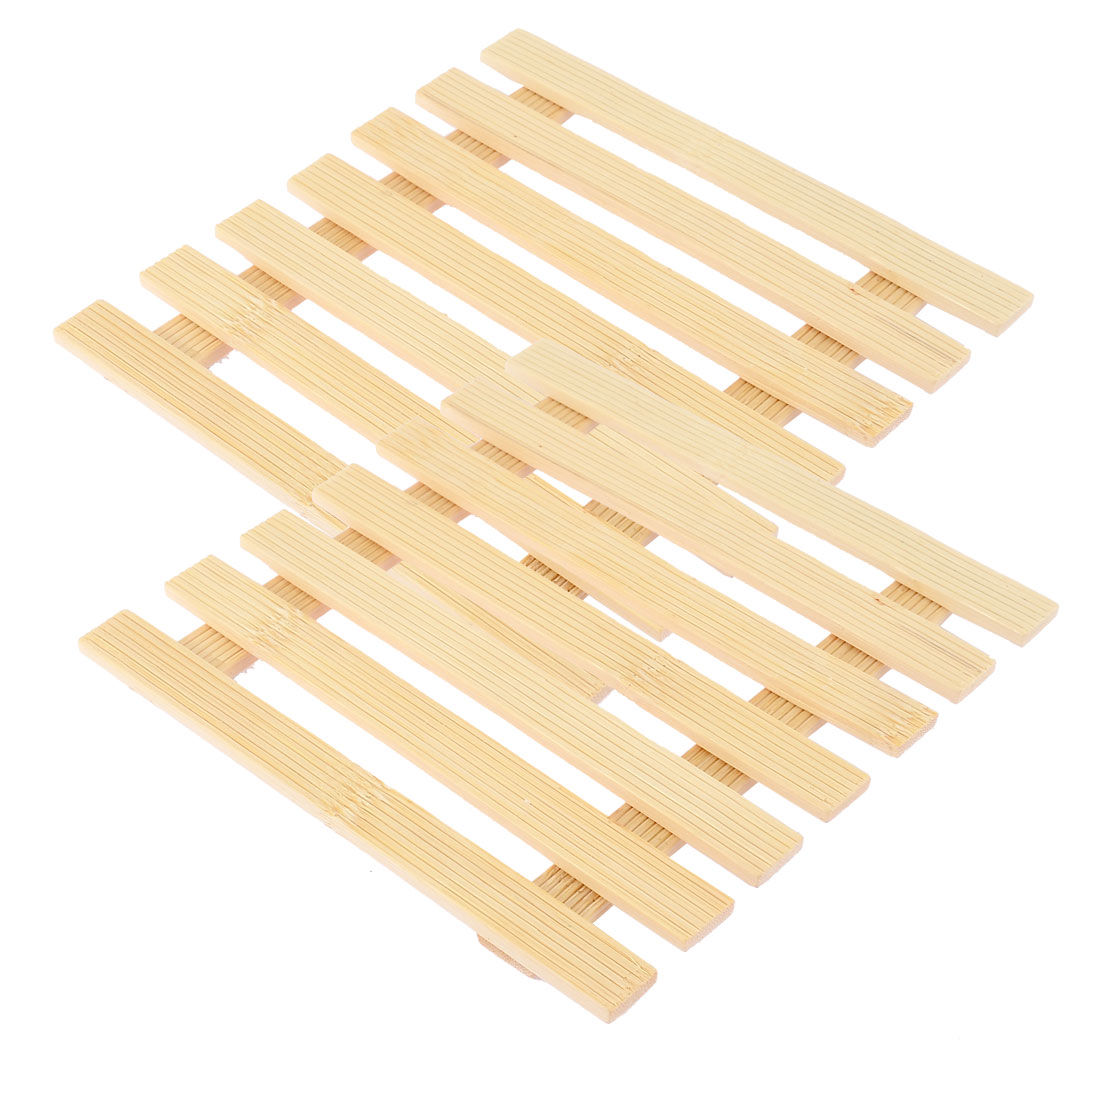 Kitchen Table Cup Dishes Bamboo Insulation Mat Beige 17 x 17cm 2pcs